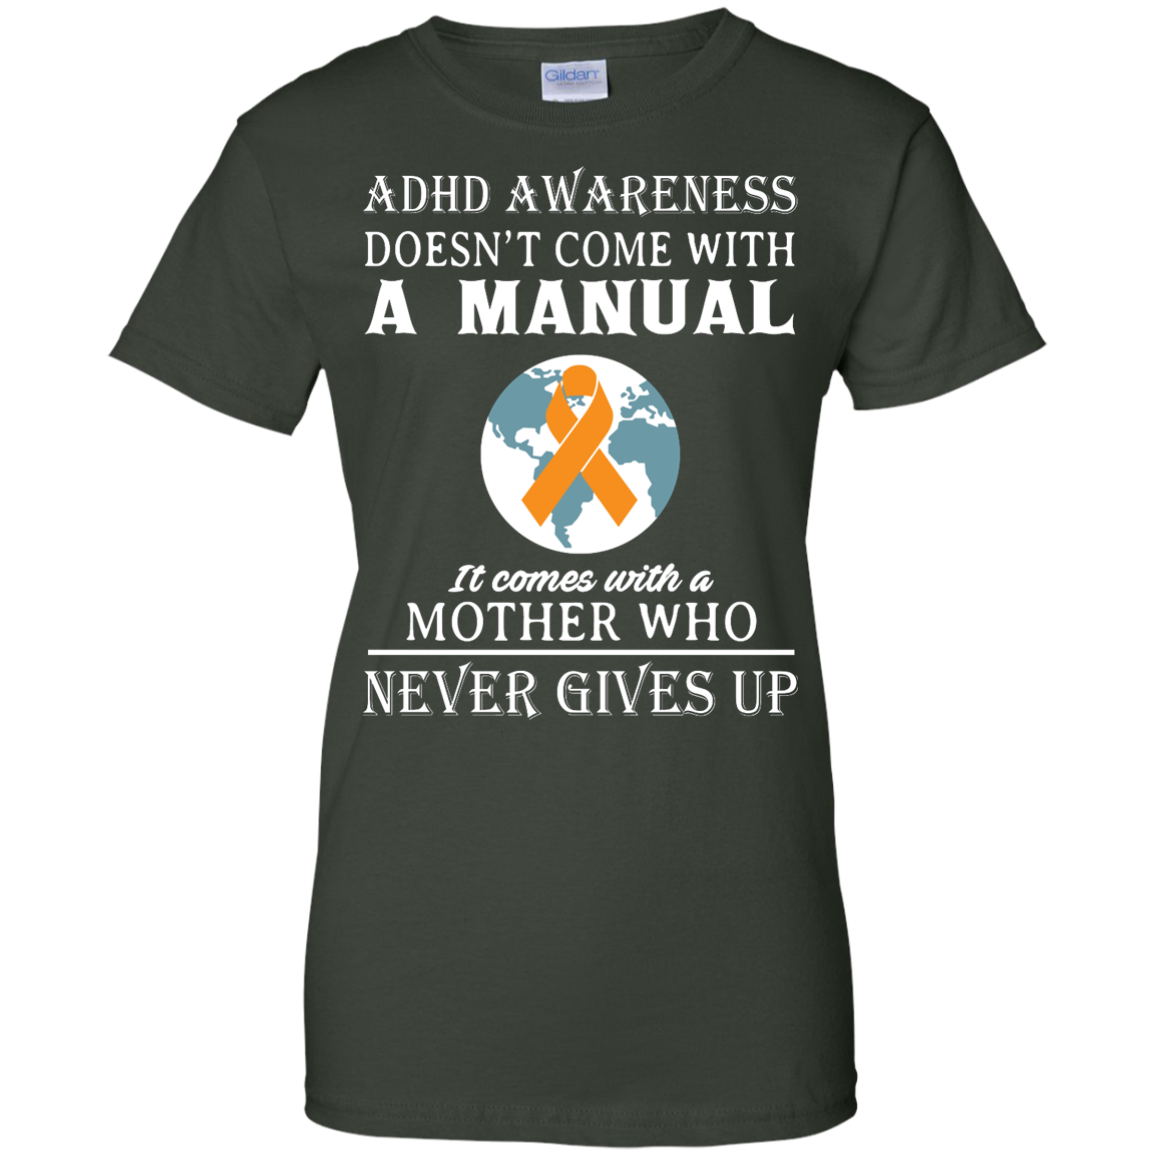 image 277px Adhd Awareness Shirt: It Come With a Mother Who Never Gives Up T Shirts